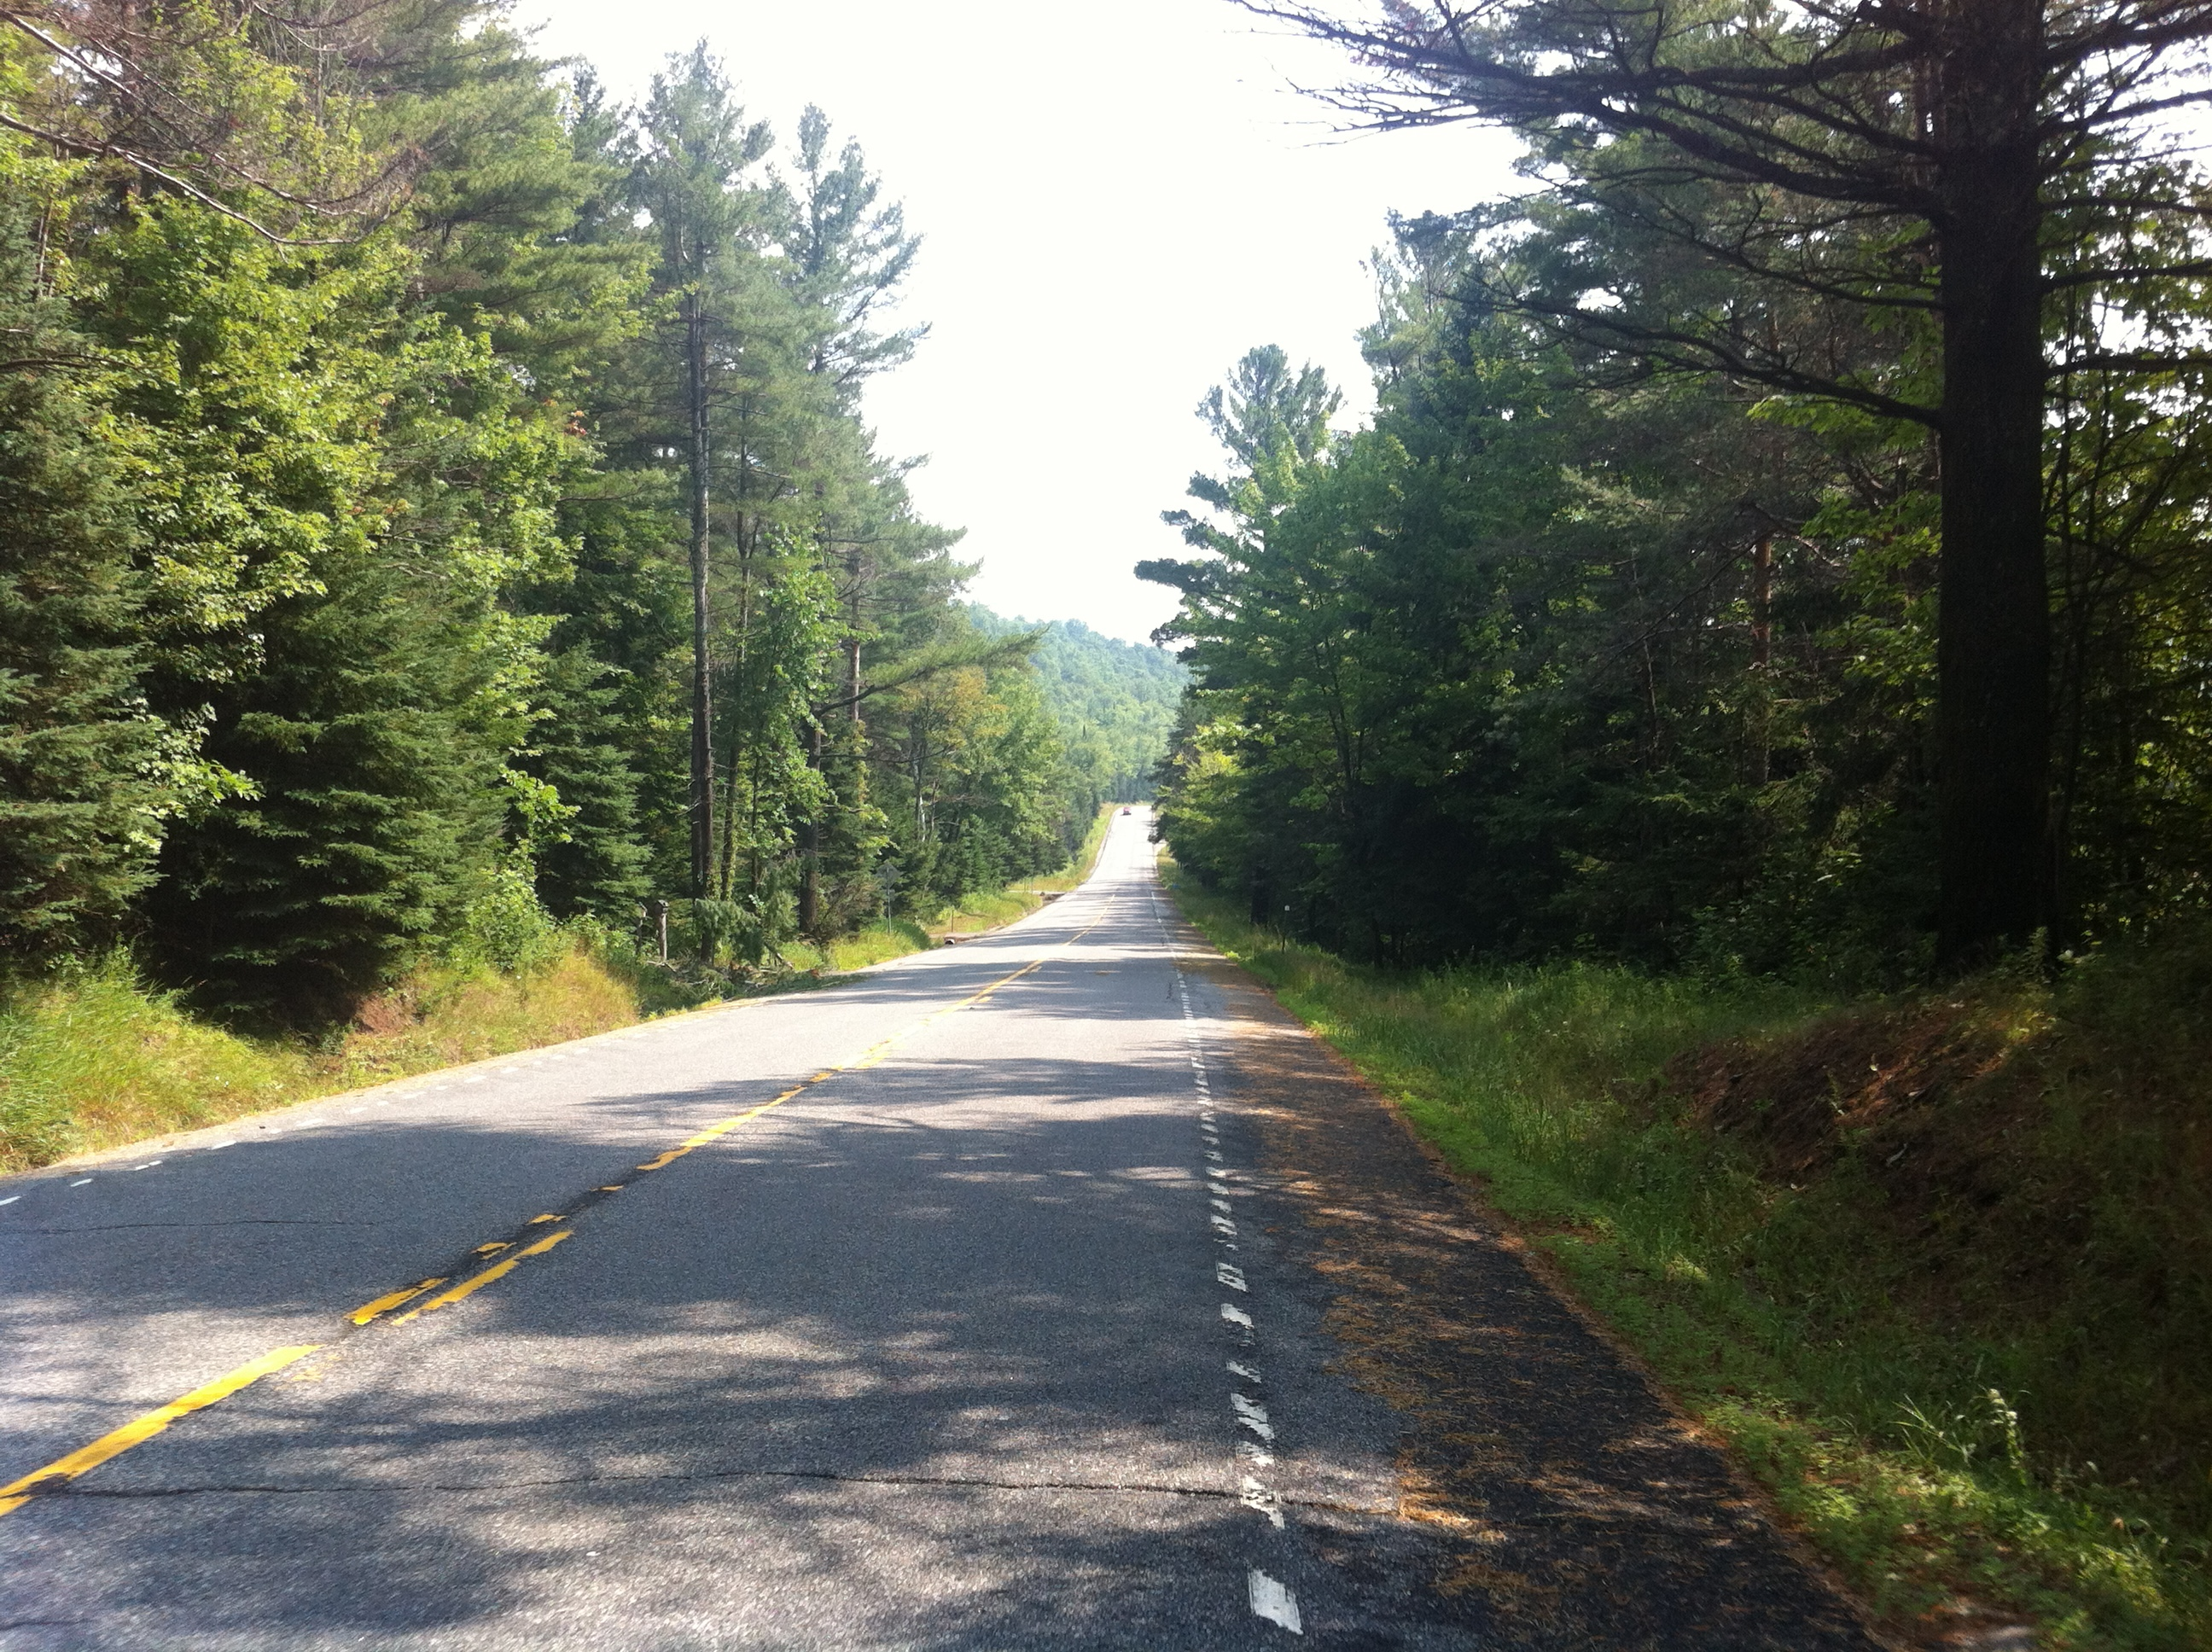 One of the many picturesque roads around Lake Placid.